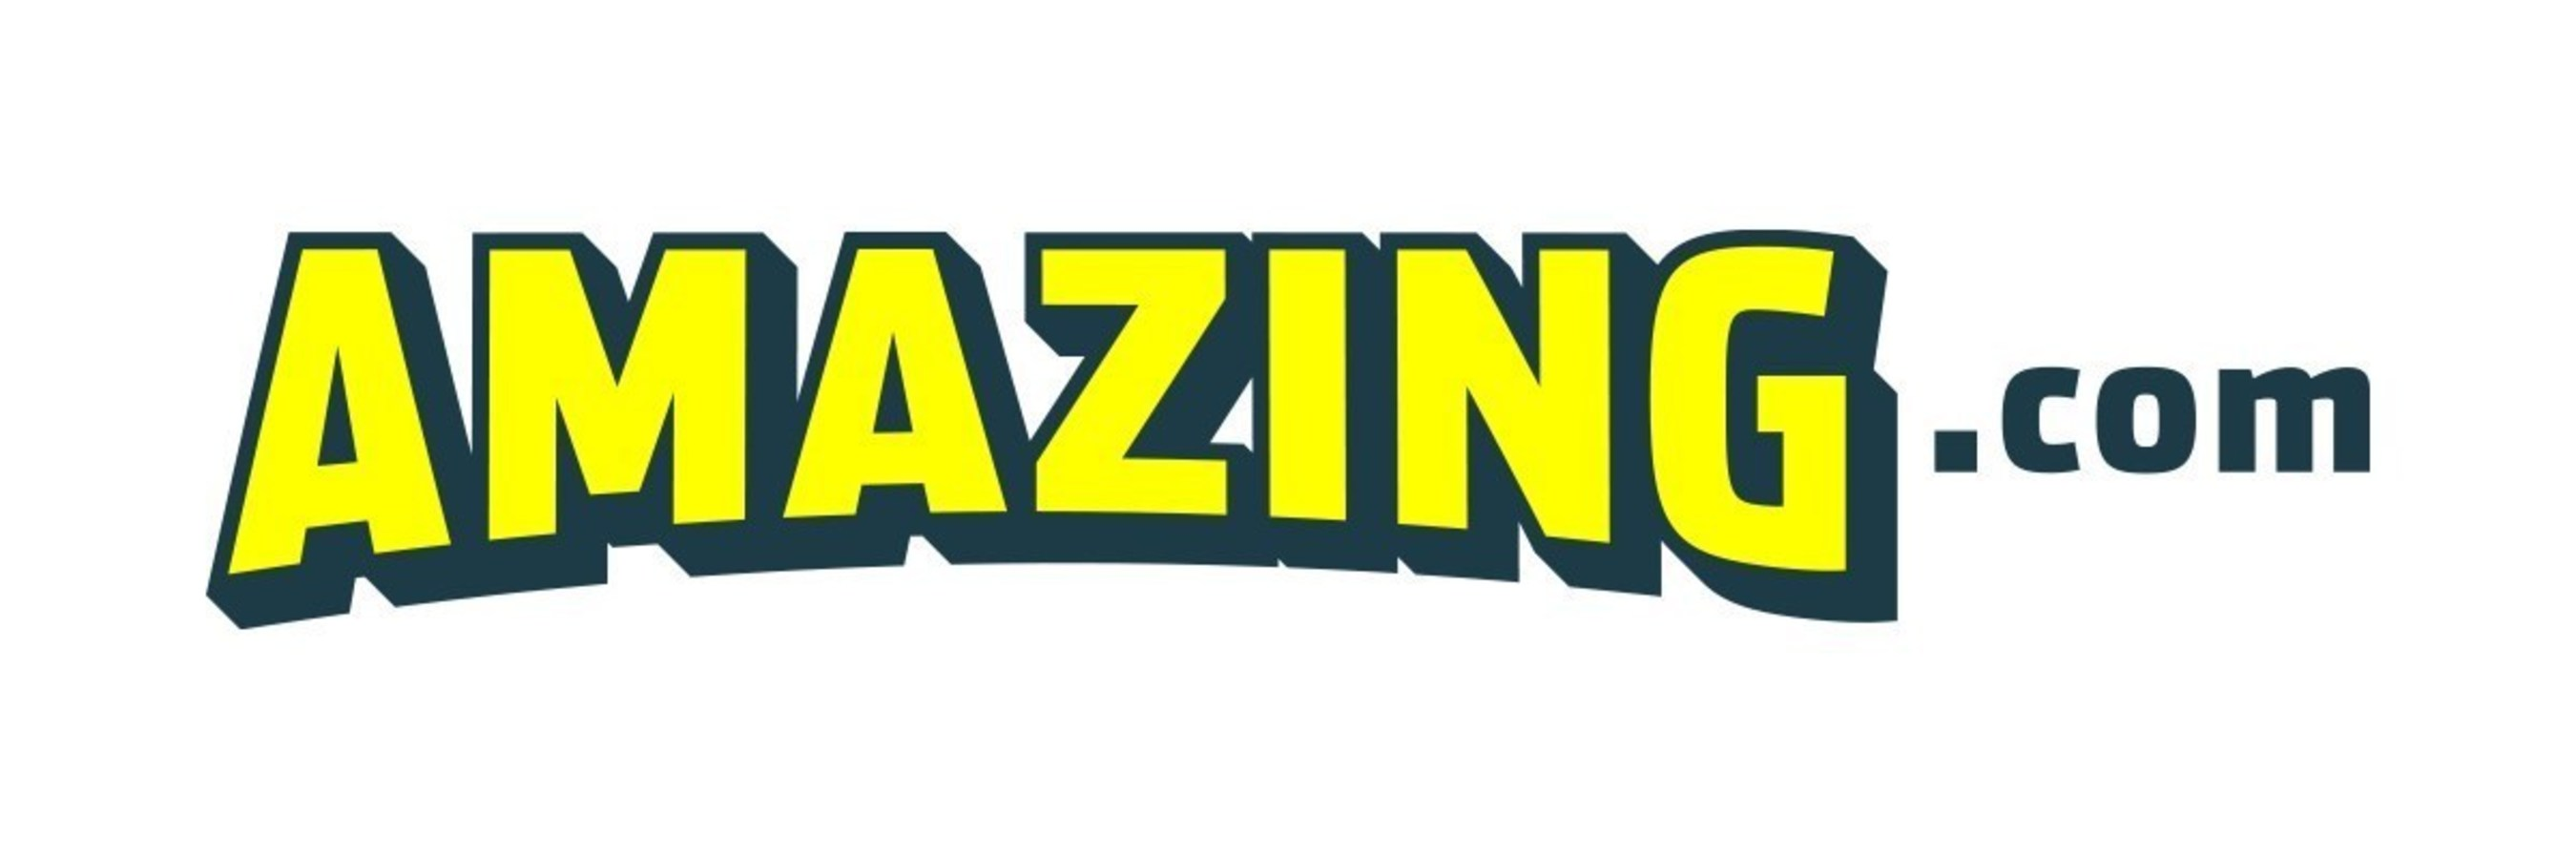 Amazing.com: We help people build successful businesses.